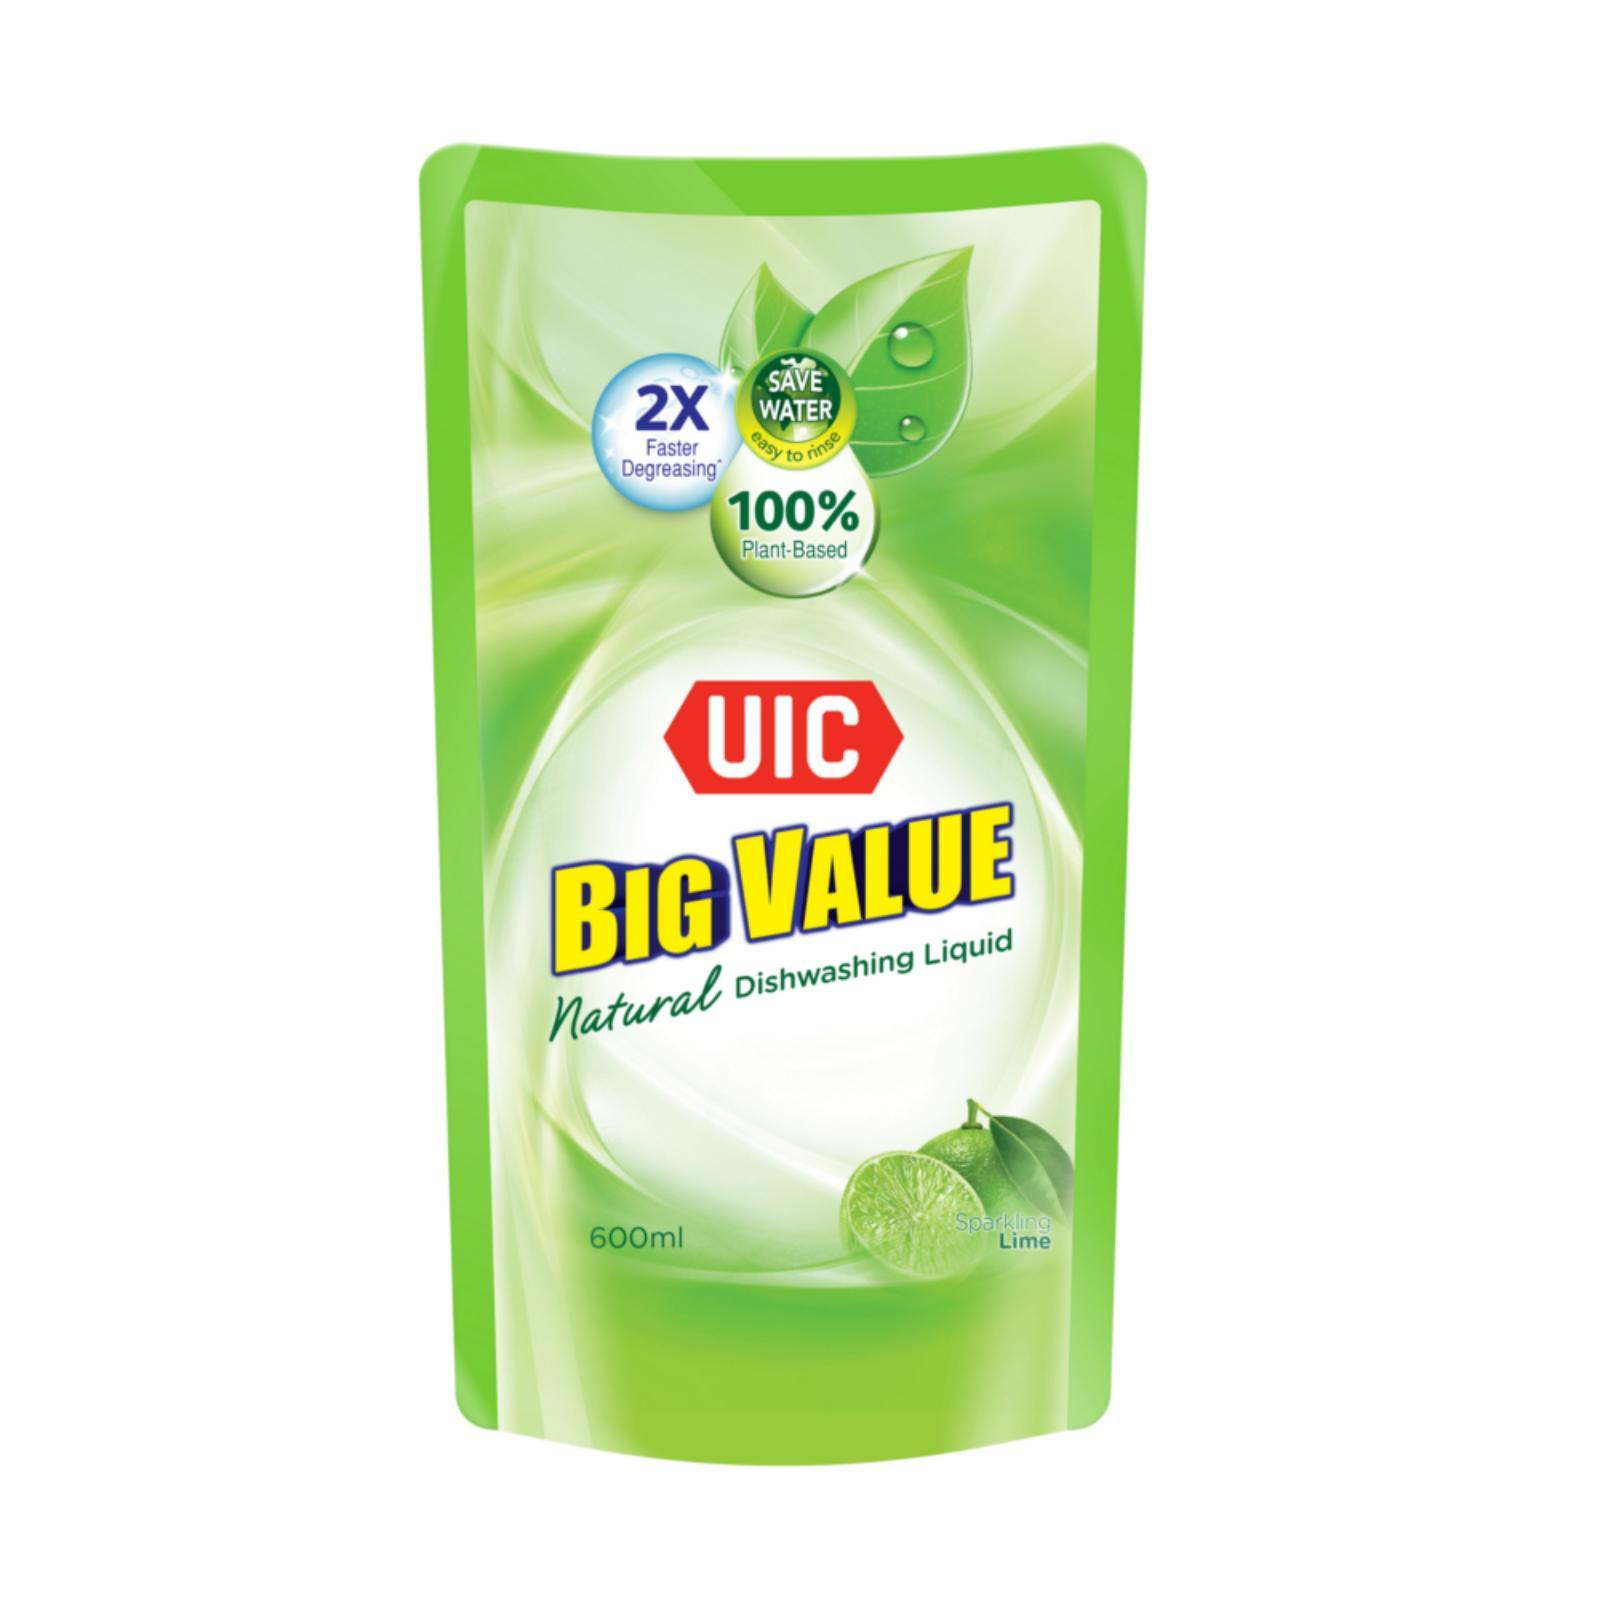 UIC Big Value Natural Dishwashing Liquid Refill - Lime